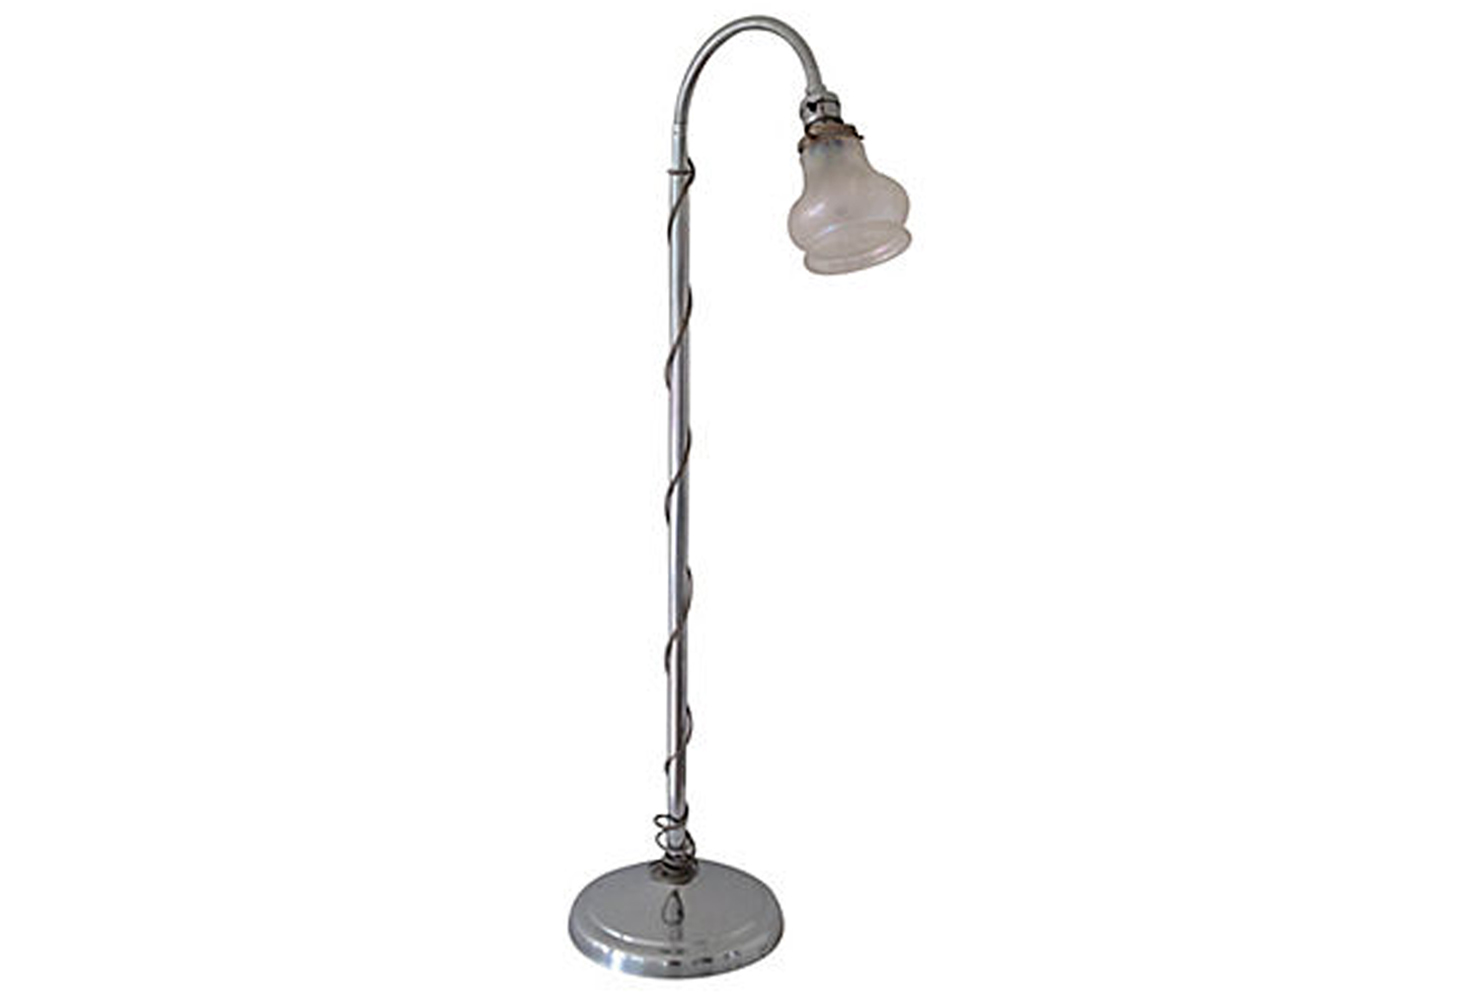 1950s Adjustable Chrome Floor Lamp With French Glass Shade